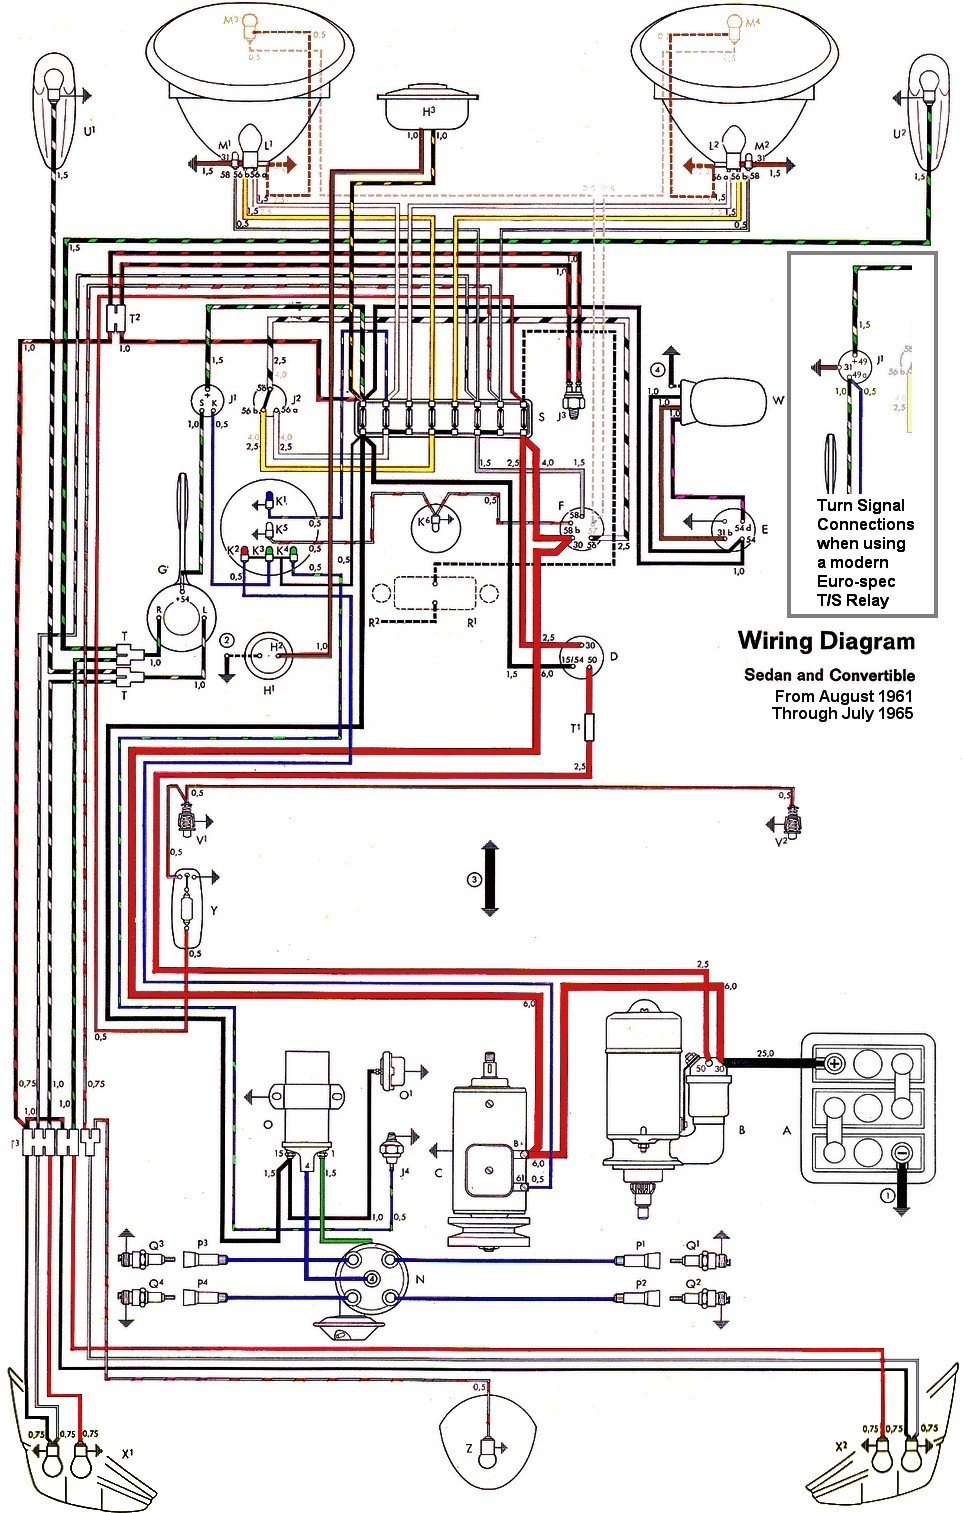 bug_62 65withinset wiring diagram vw beetle sedan and convertible 1961 1965 vw 1969 vw beetle wiring diagram at bayanpartner.co